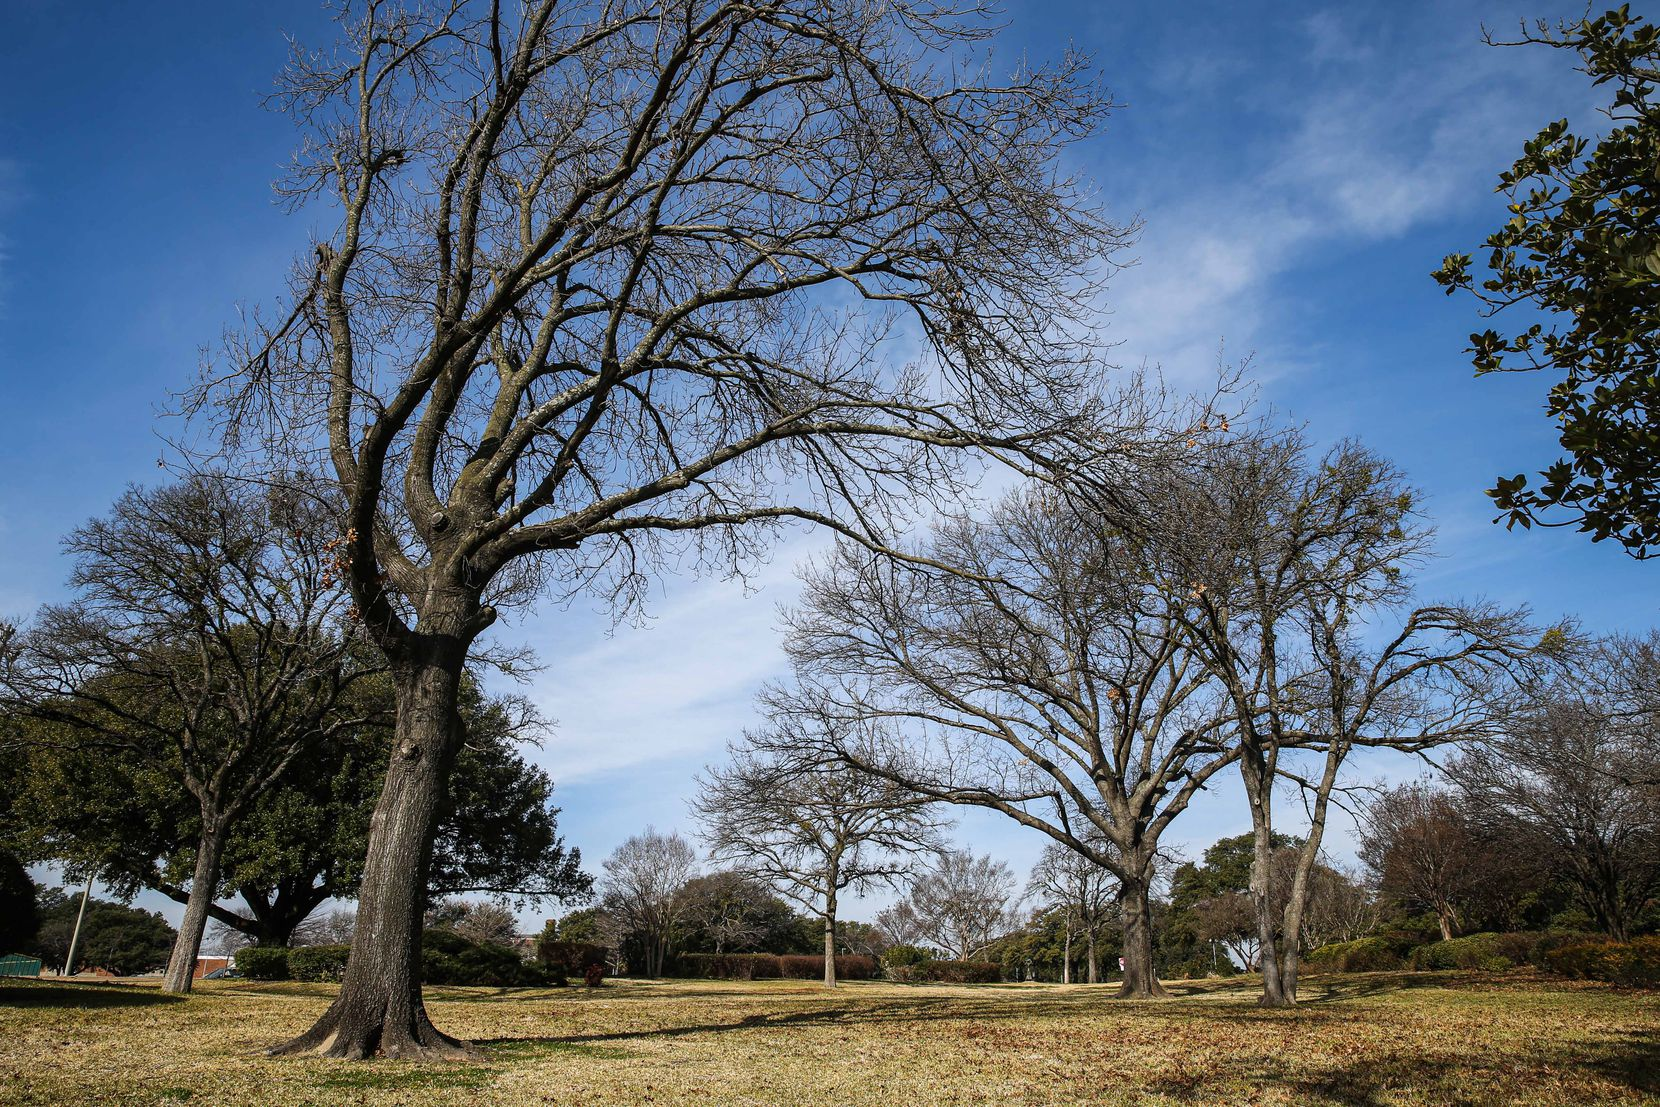 Samuell Grand Park in East Dallas has many lovely pockets but the lack of pedestrian-friendly sidewalks and trails makes connectivity and access a challenge.